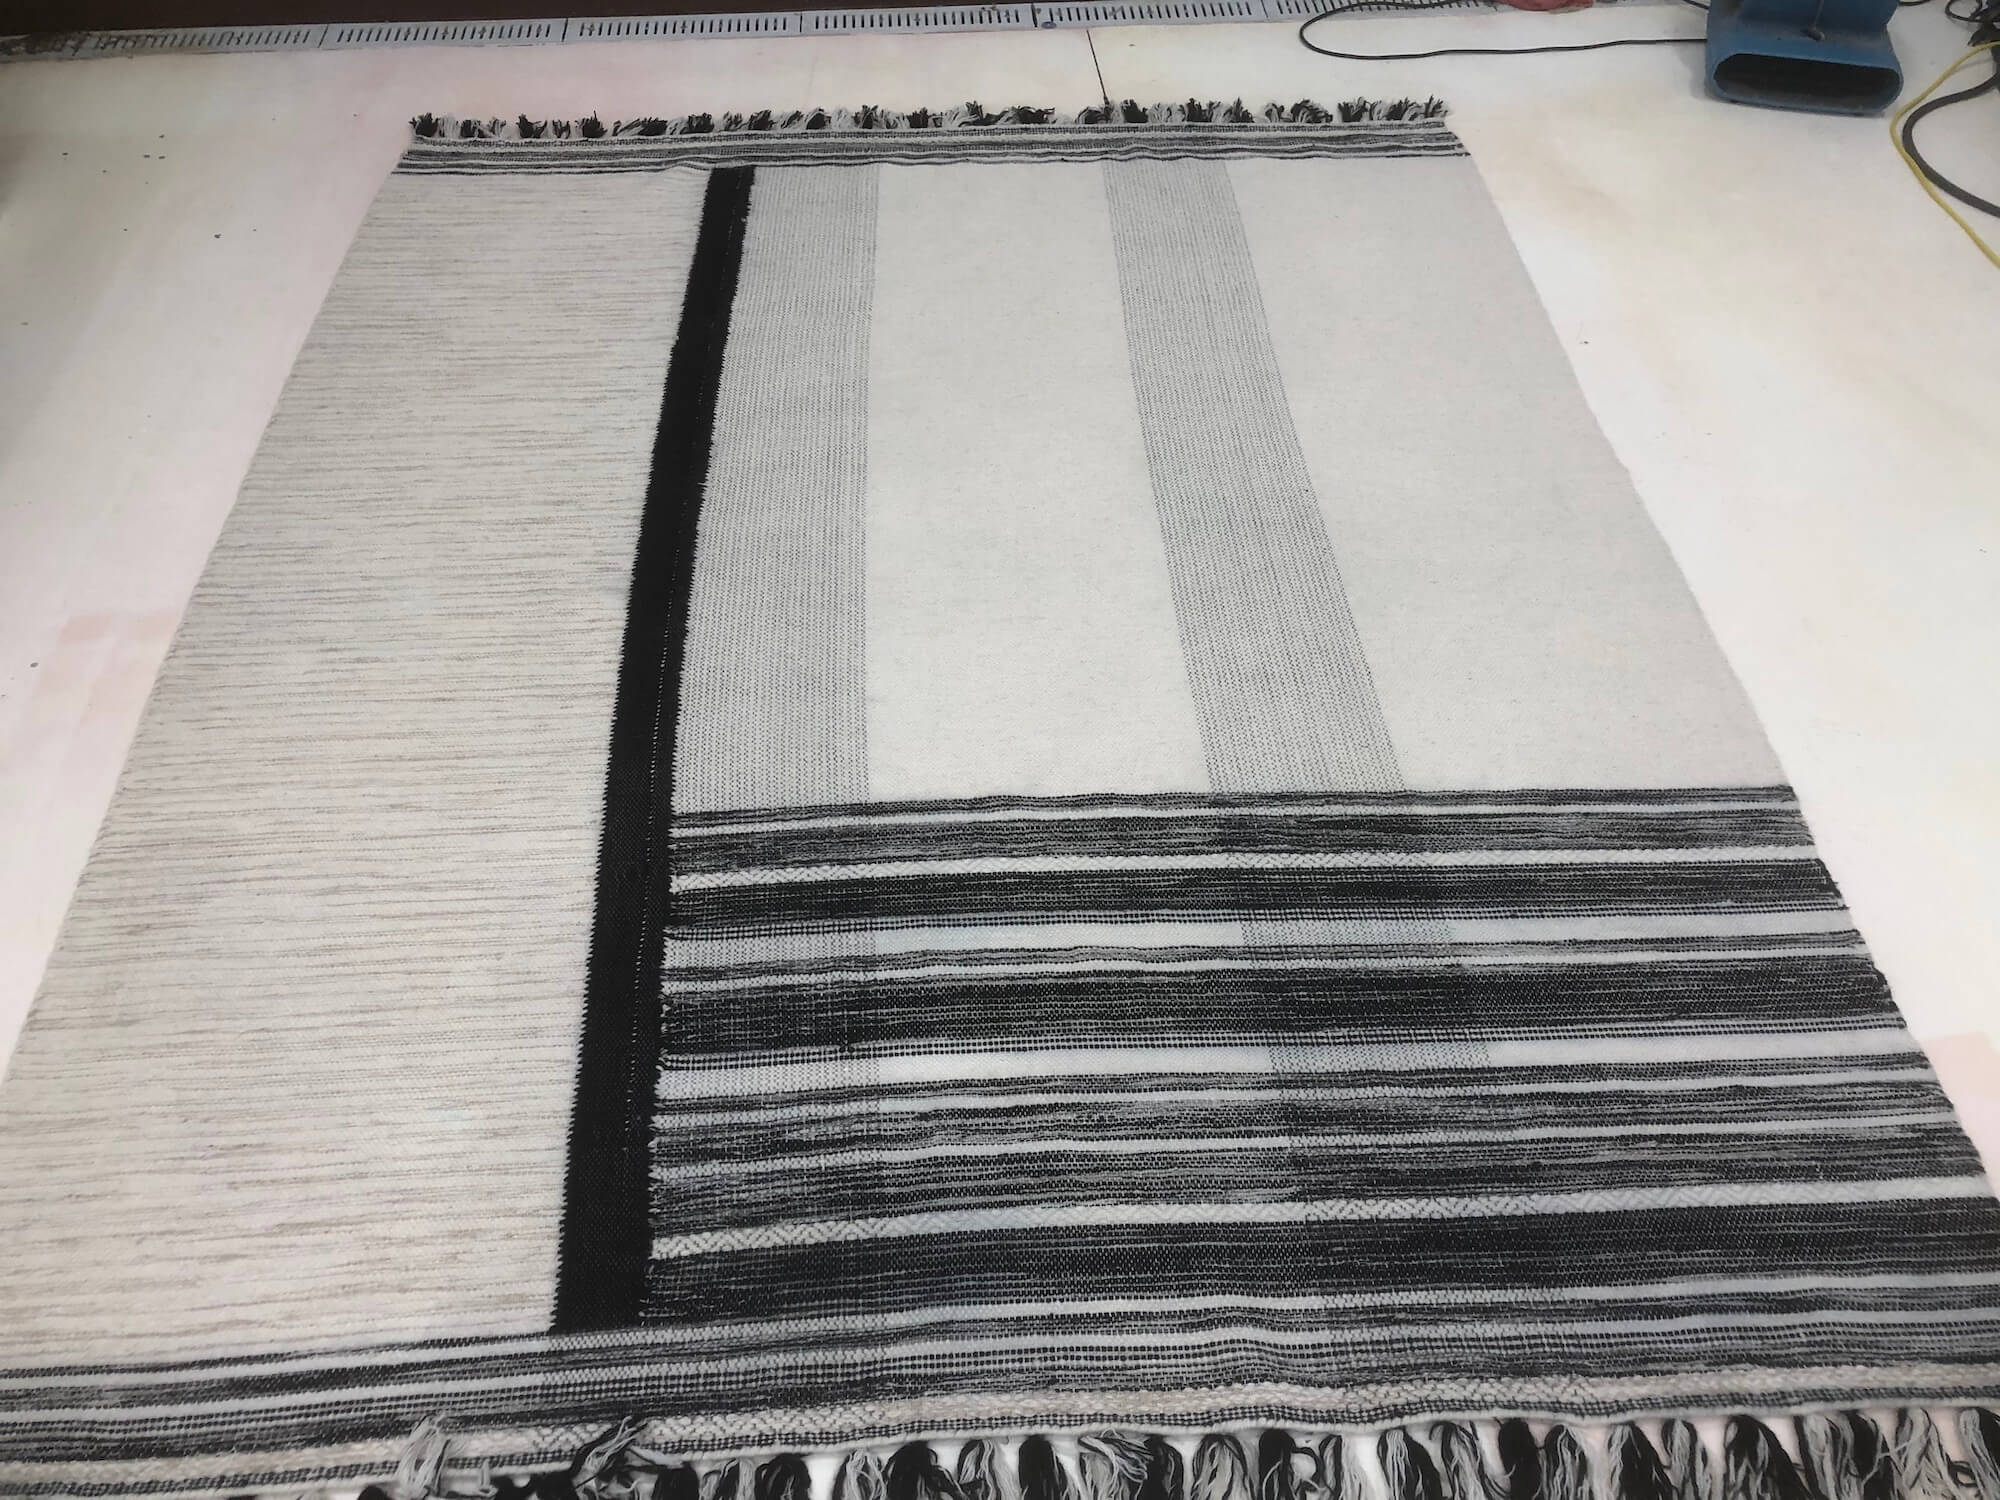 Chem-Dry Cleaned Black & White Rug